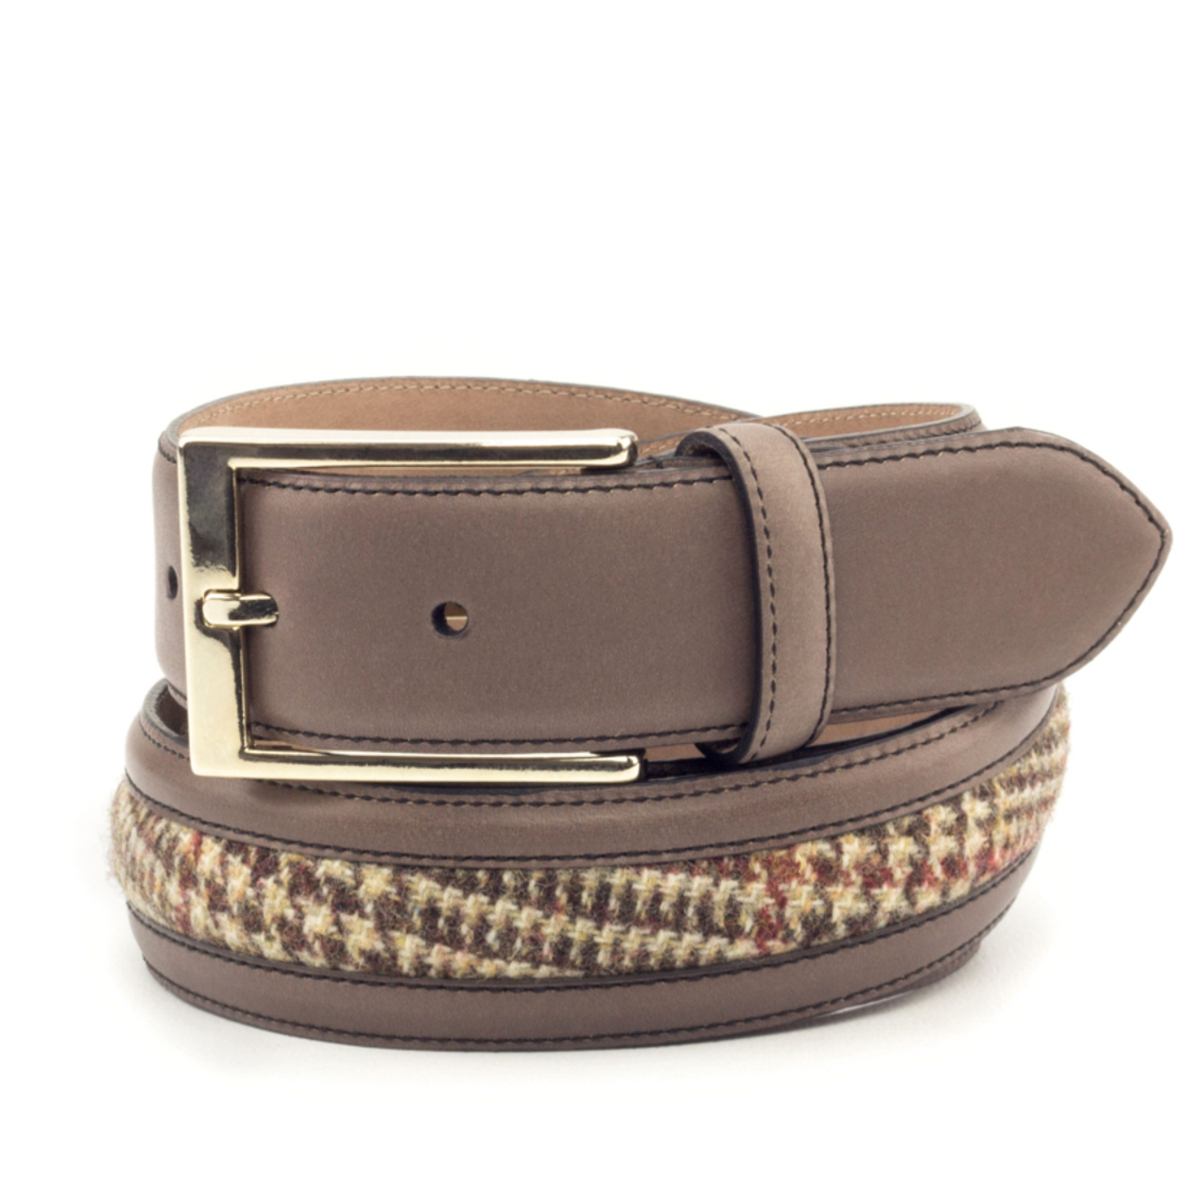 Men's bespoke leather belt Vergara